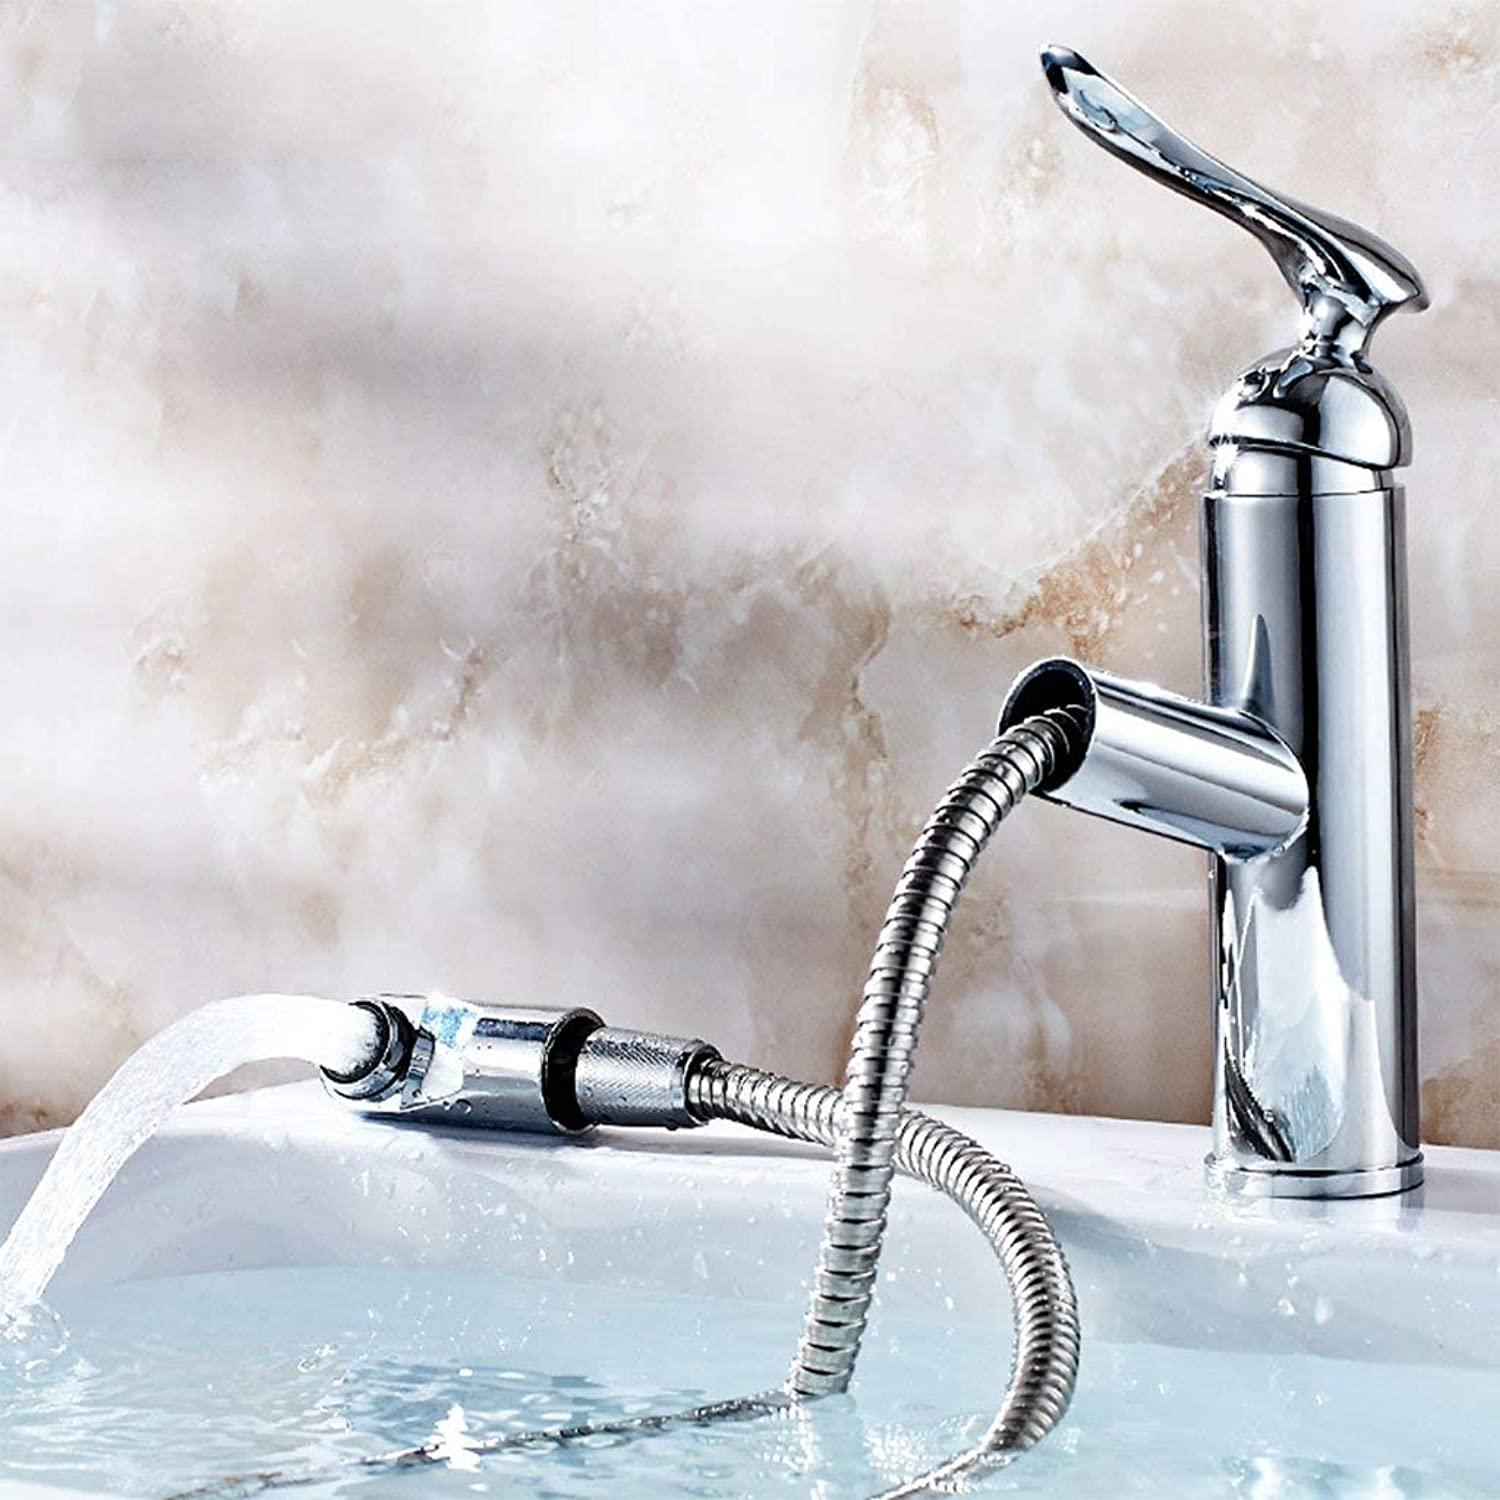 BMY High-end Basin Mixer Creative Fashion Bathroom Kitchen Hot And Cold Pull Out Faucet